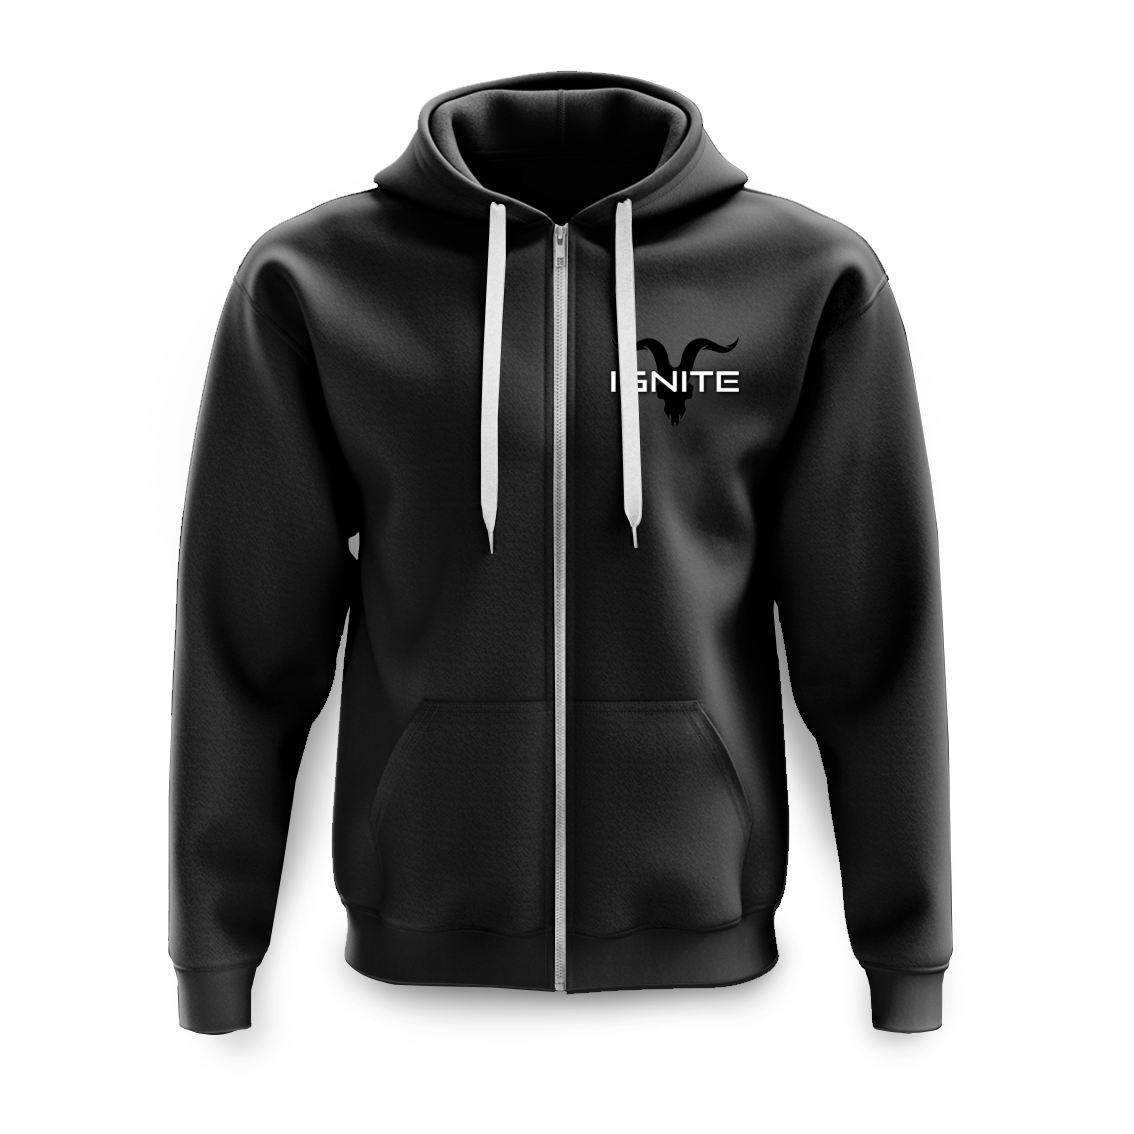 Unisex Black Zip Up Logo Fleece Hoodie - ignite-merch